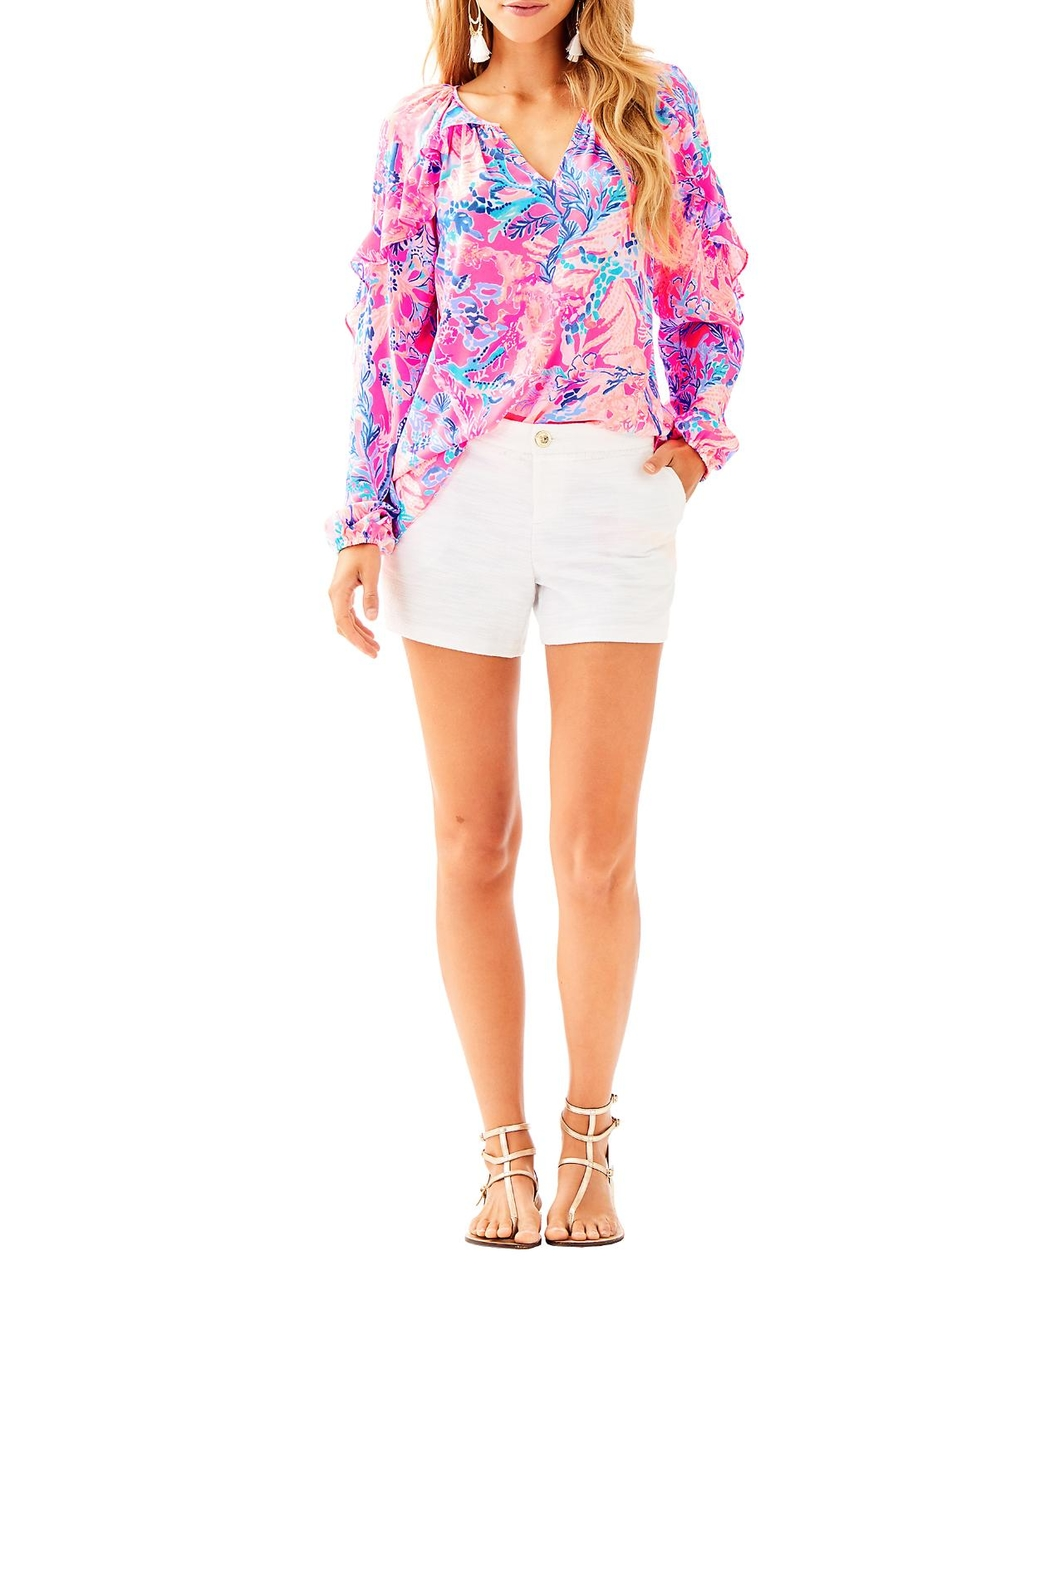 Lilly Pulitzer Callahan Party Short - Back Cropped Image